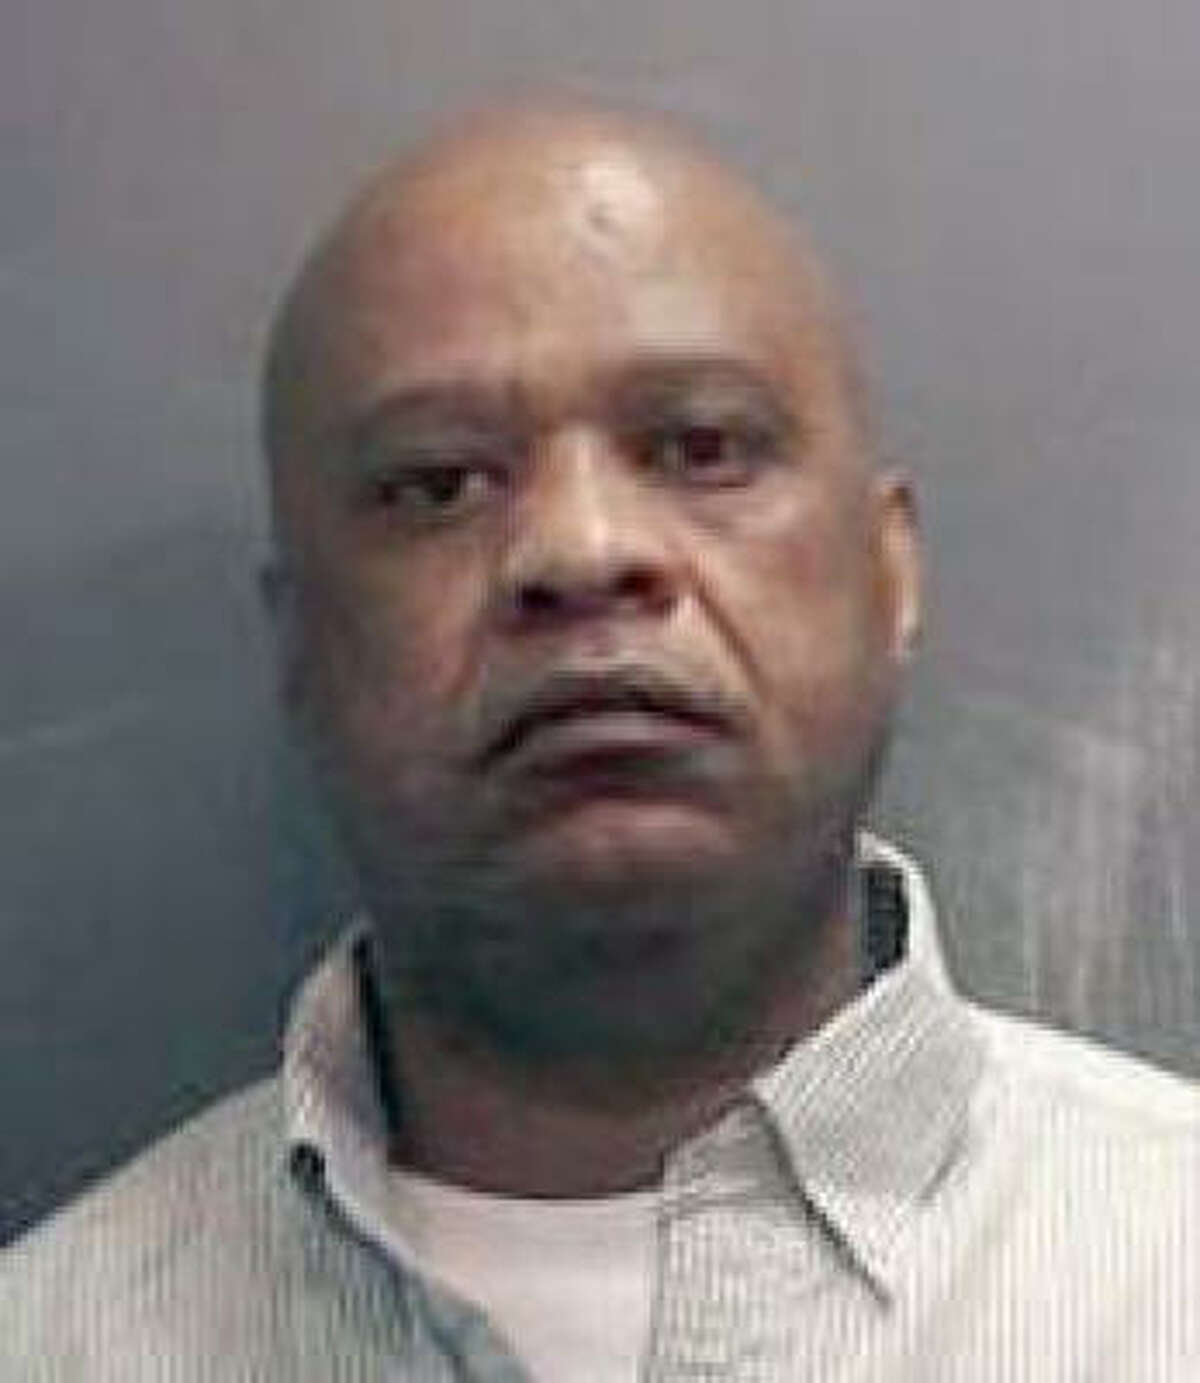 Ernest Sonnier was sentenced to life. The District Attorney's Office says it won't oppose his release.